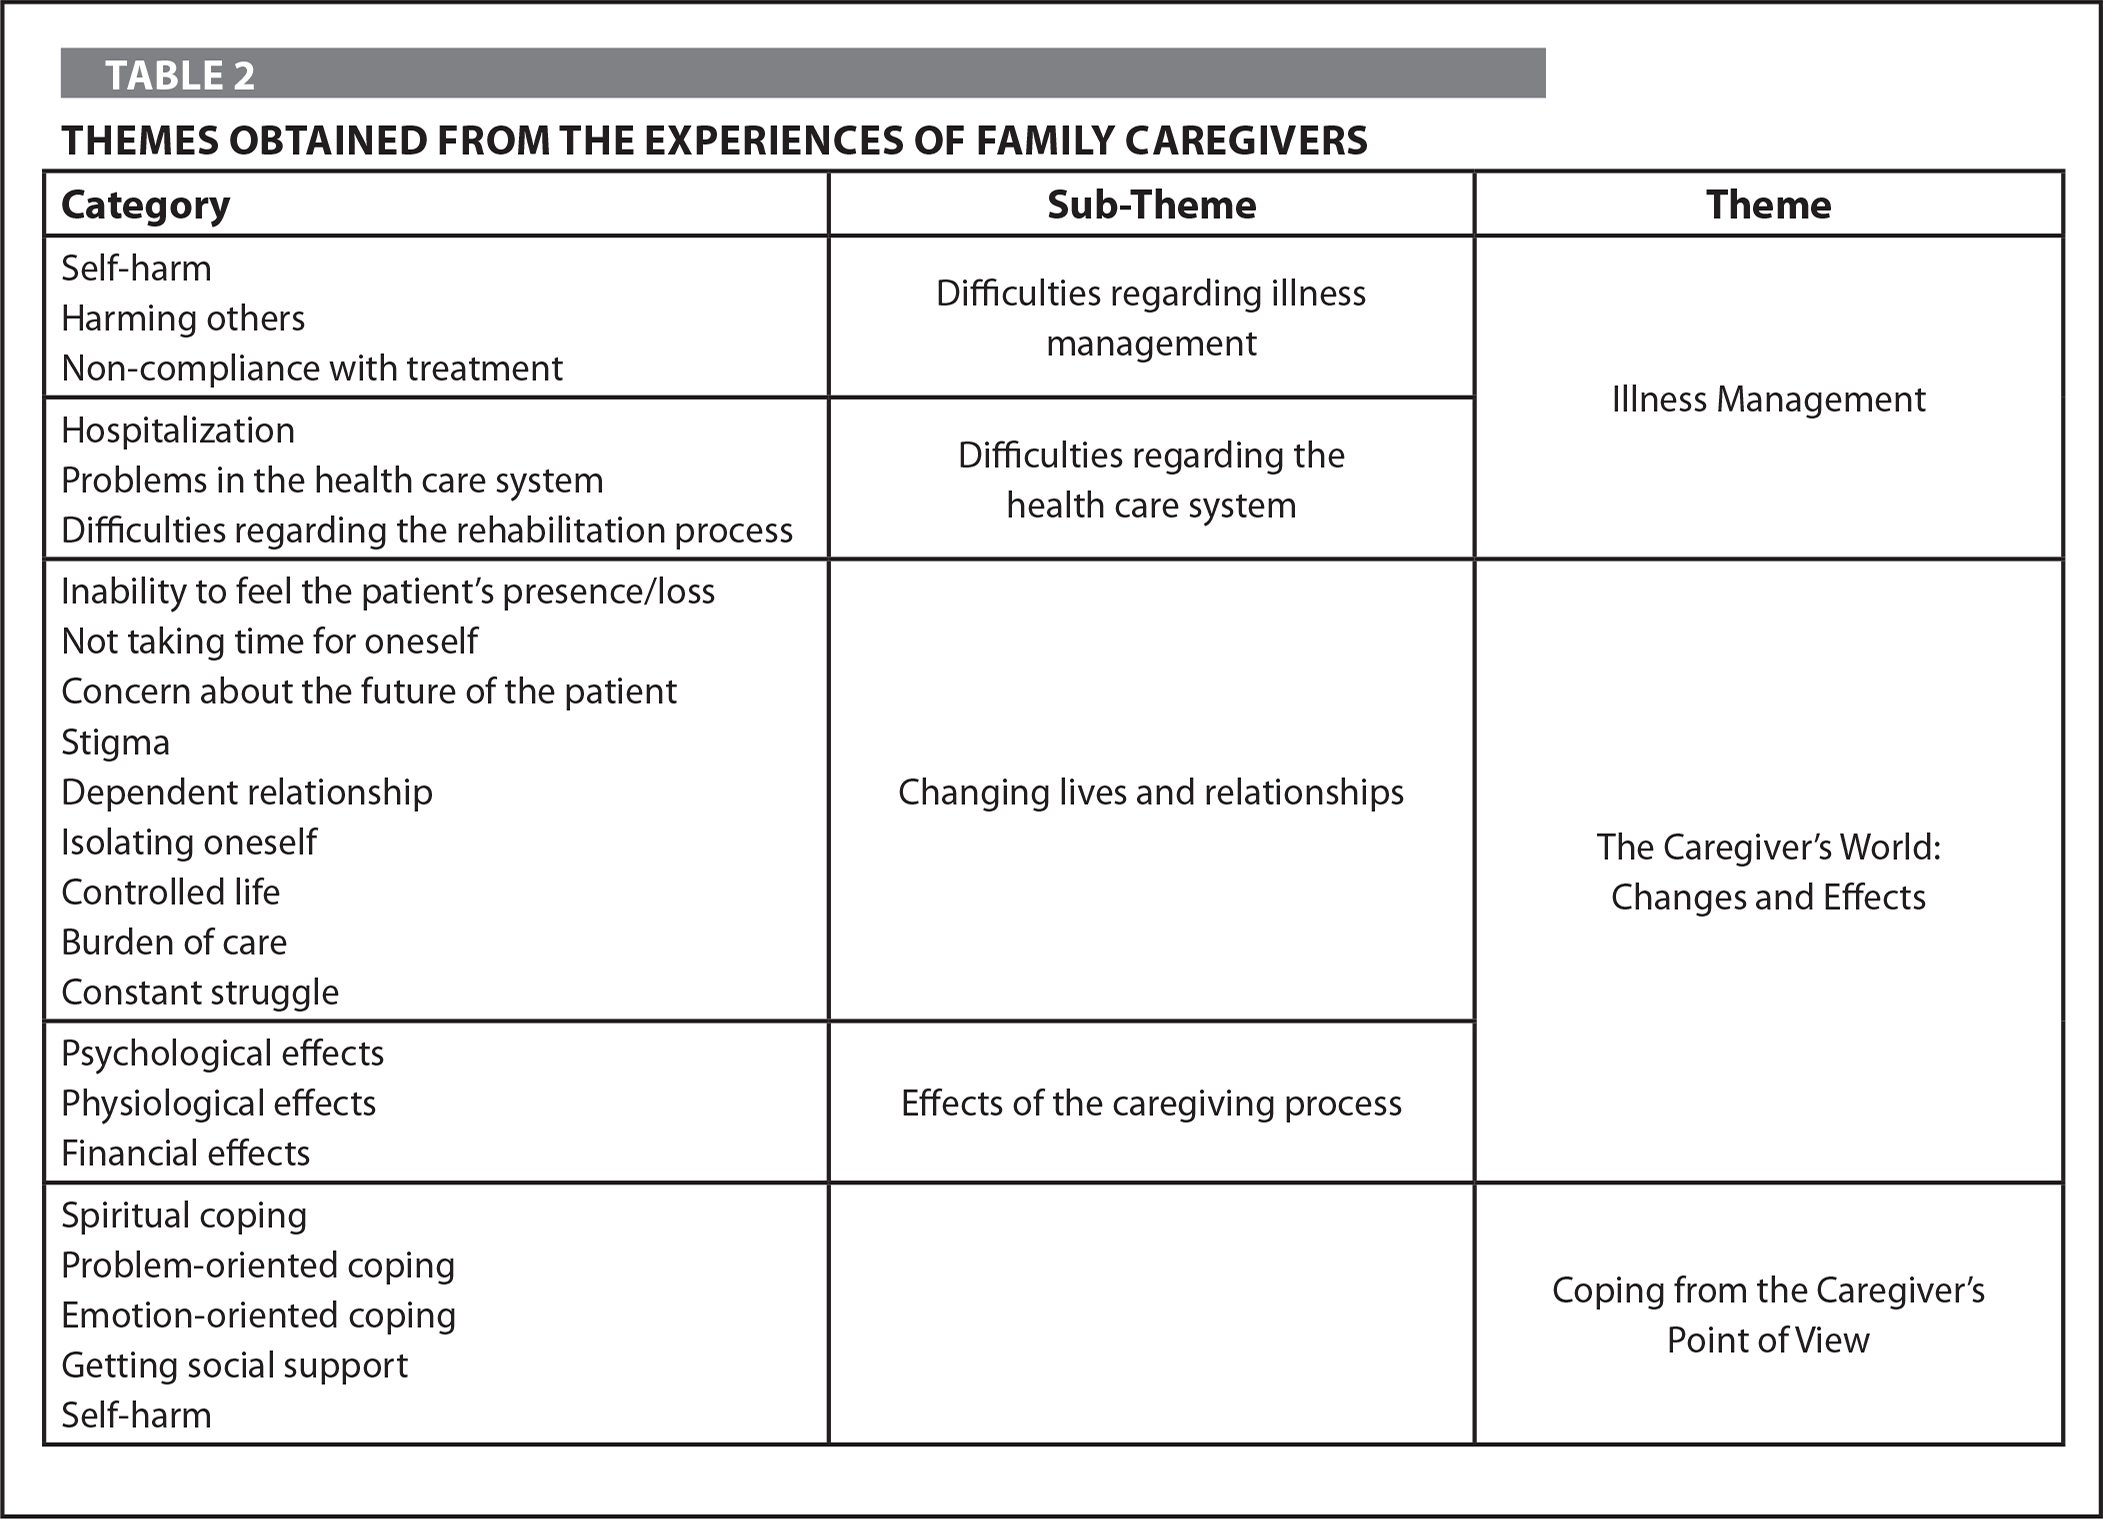 Themes Obtained from the Experiences of Family Caregivers